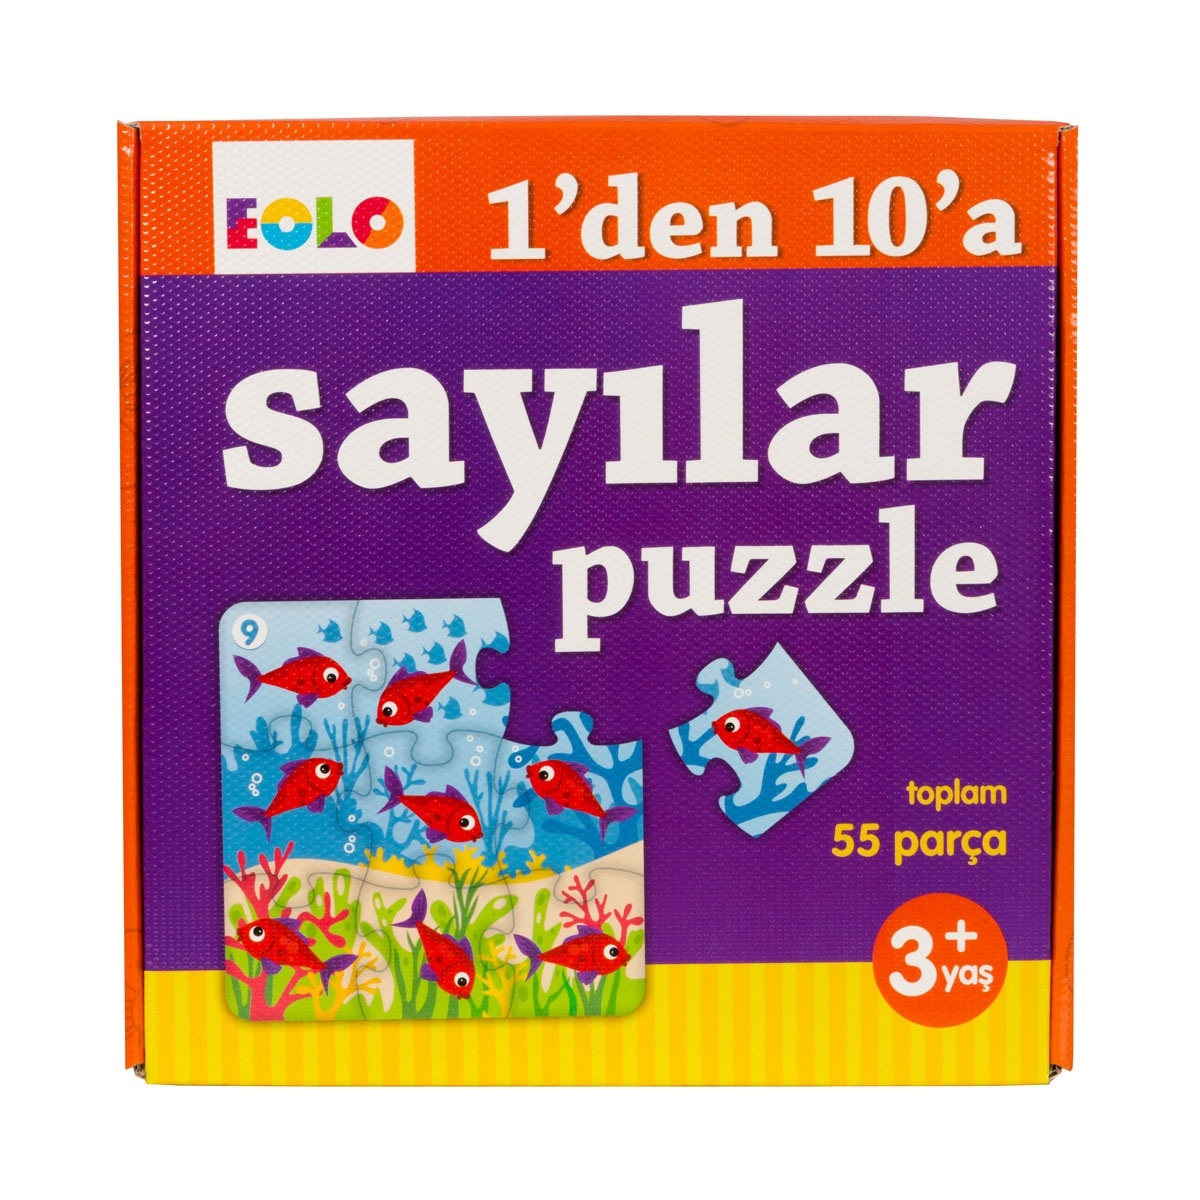 Puzzle for numbers from 1 to 10